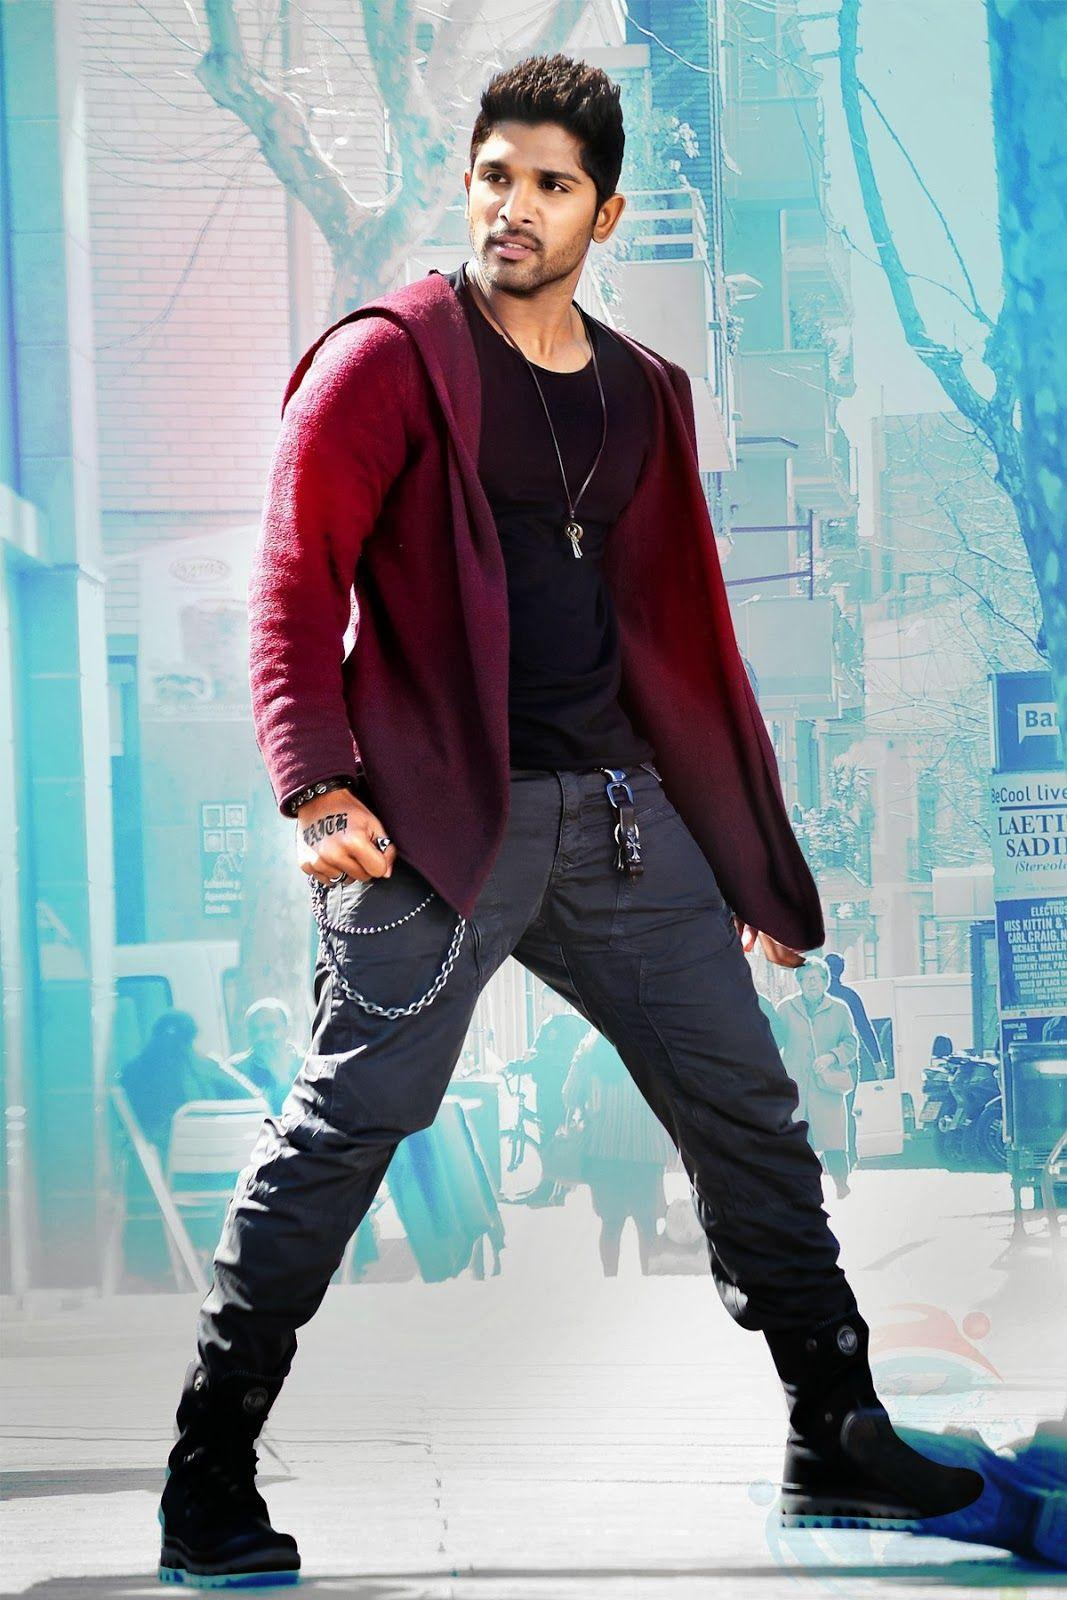 Allu Arjun Wallpapers - Wallpaper Cave